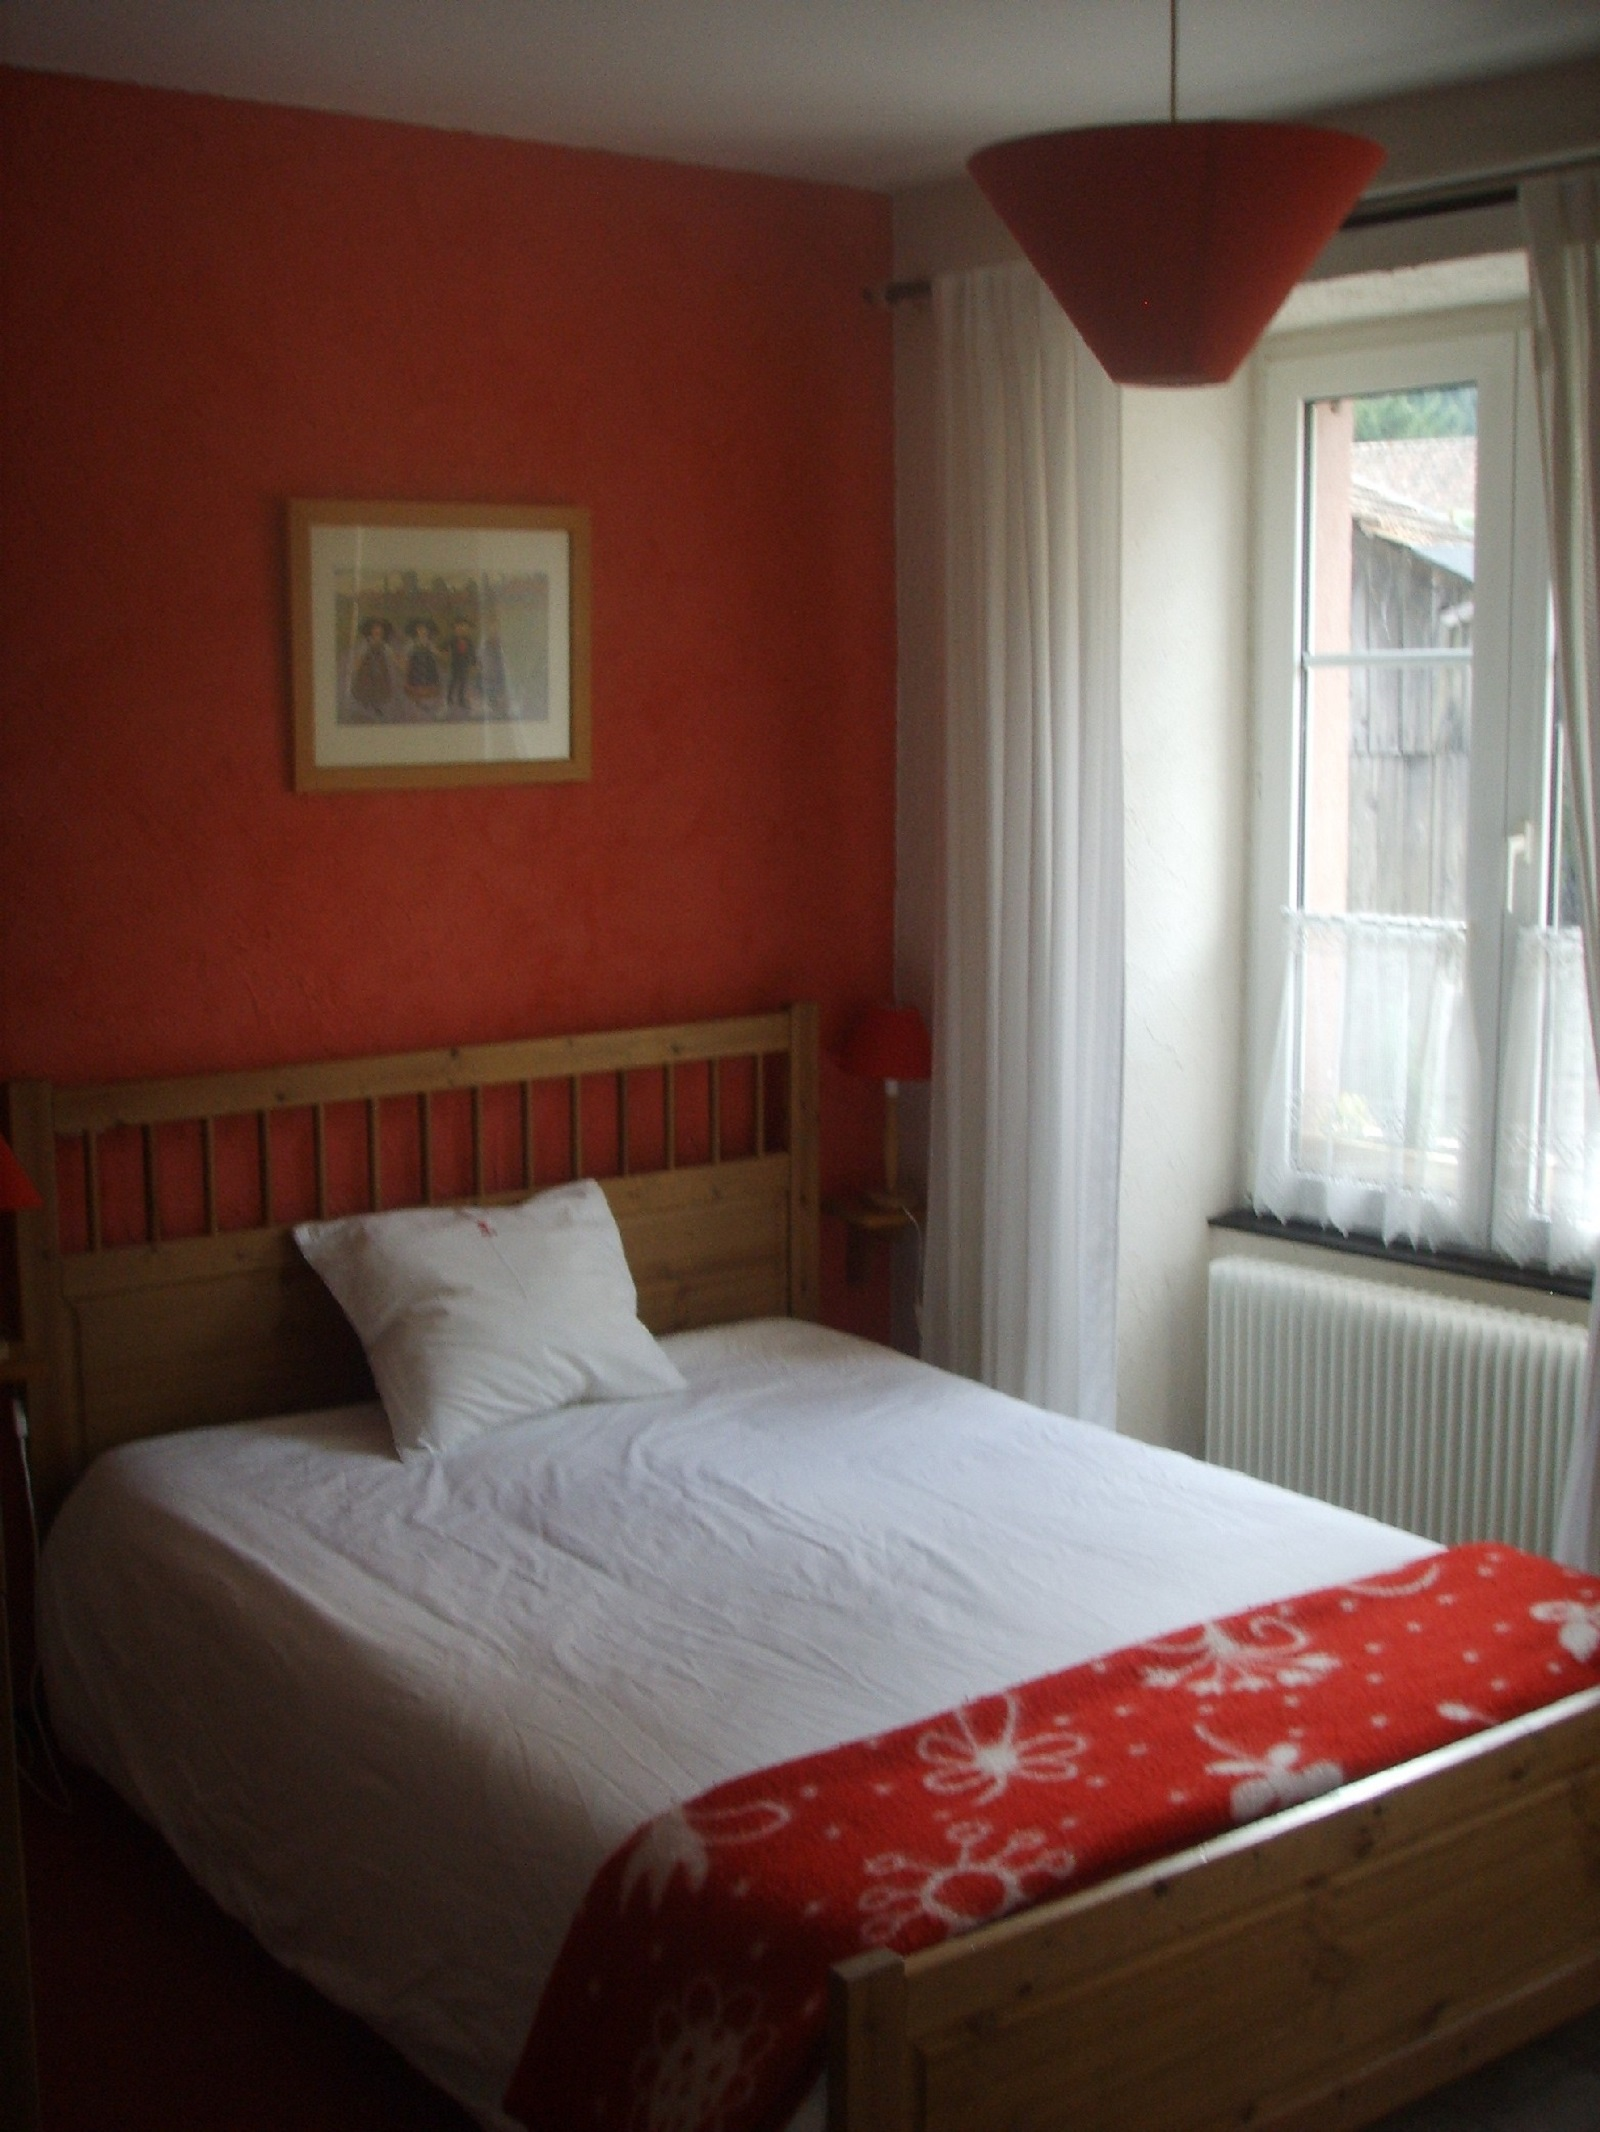 Chambres d 39 h tes le luxhof - Chambres d hotes valberg ...